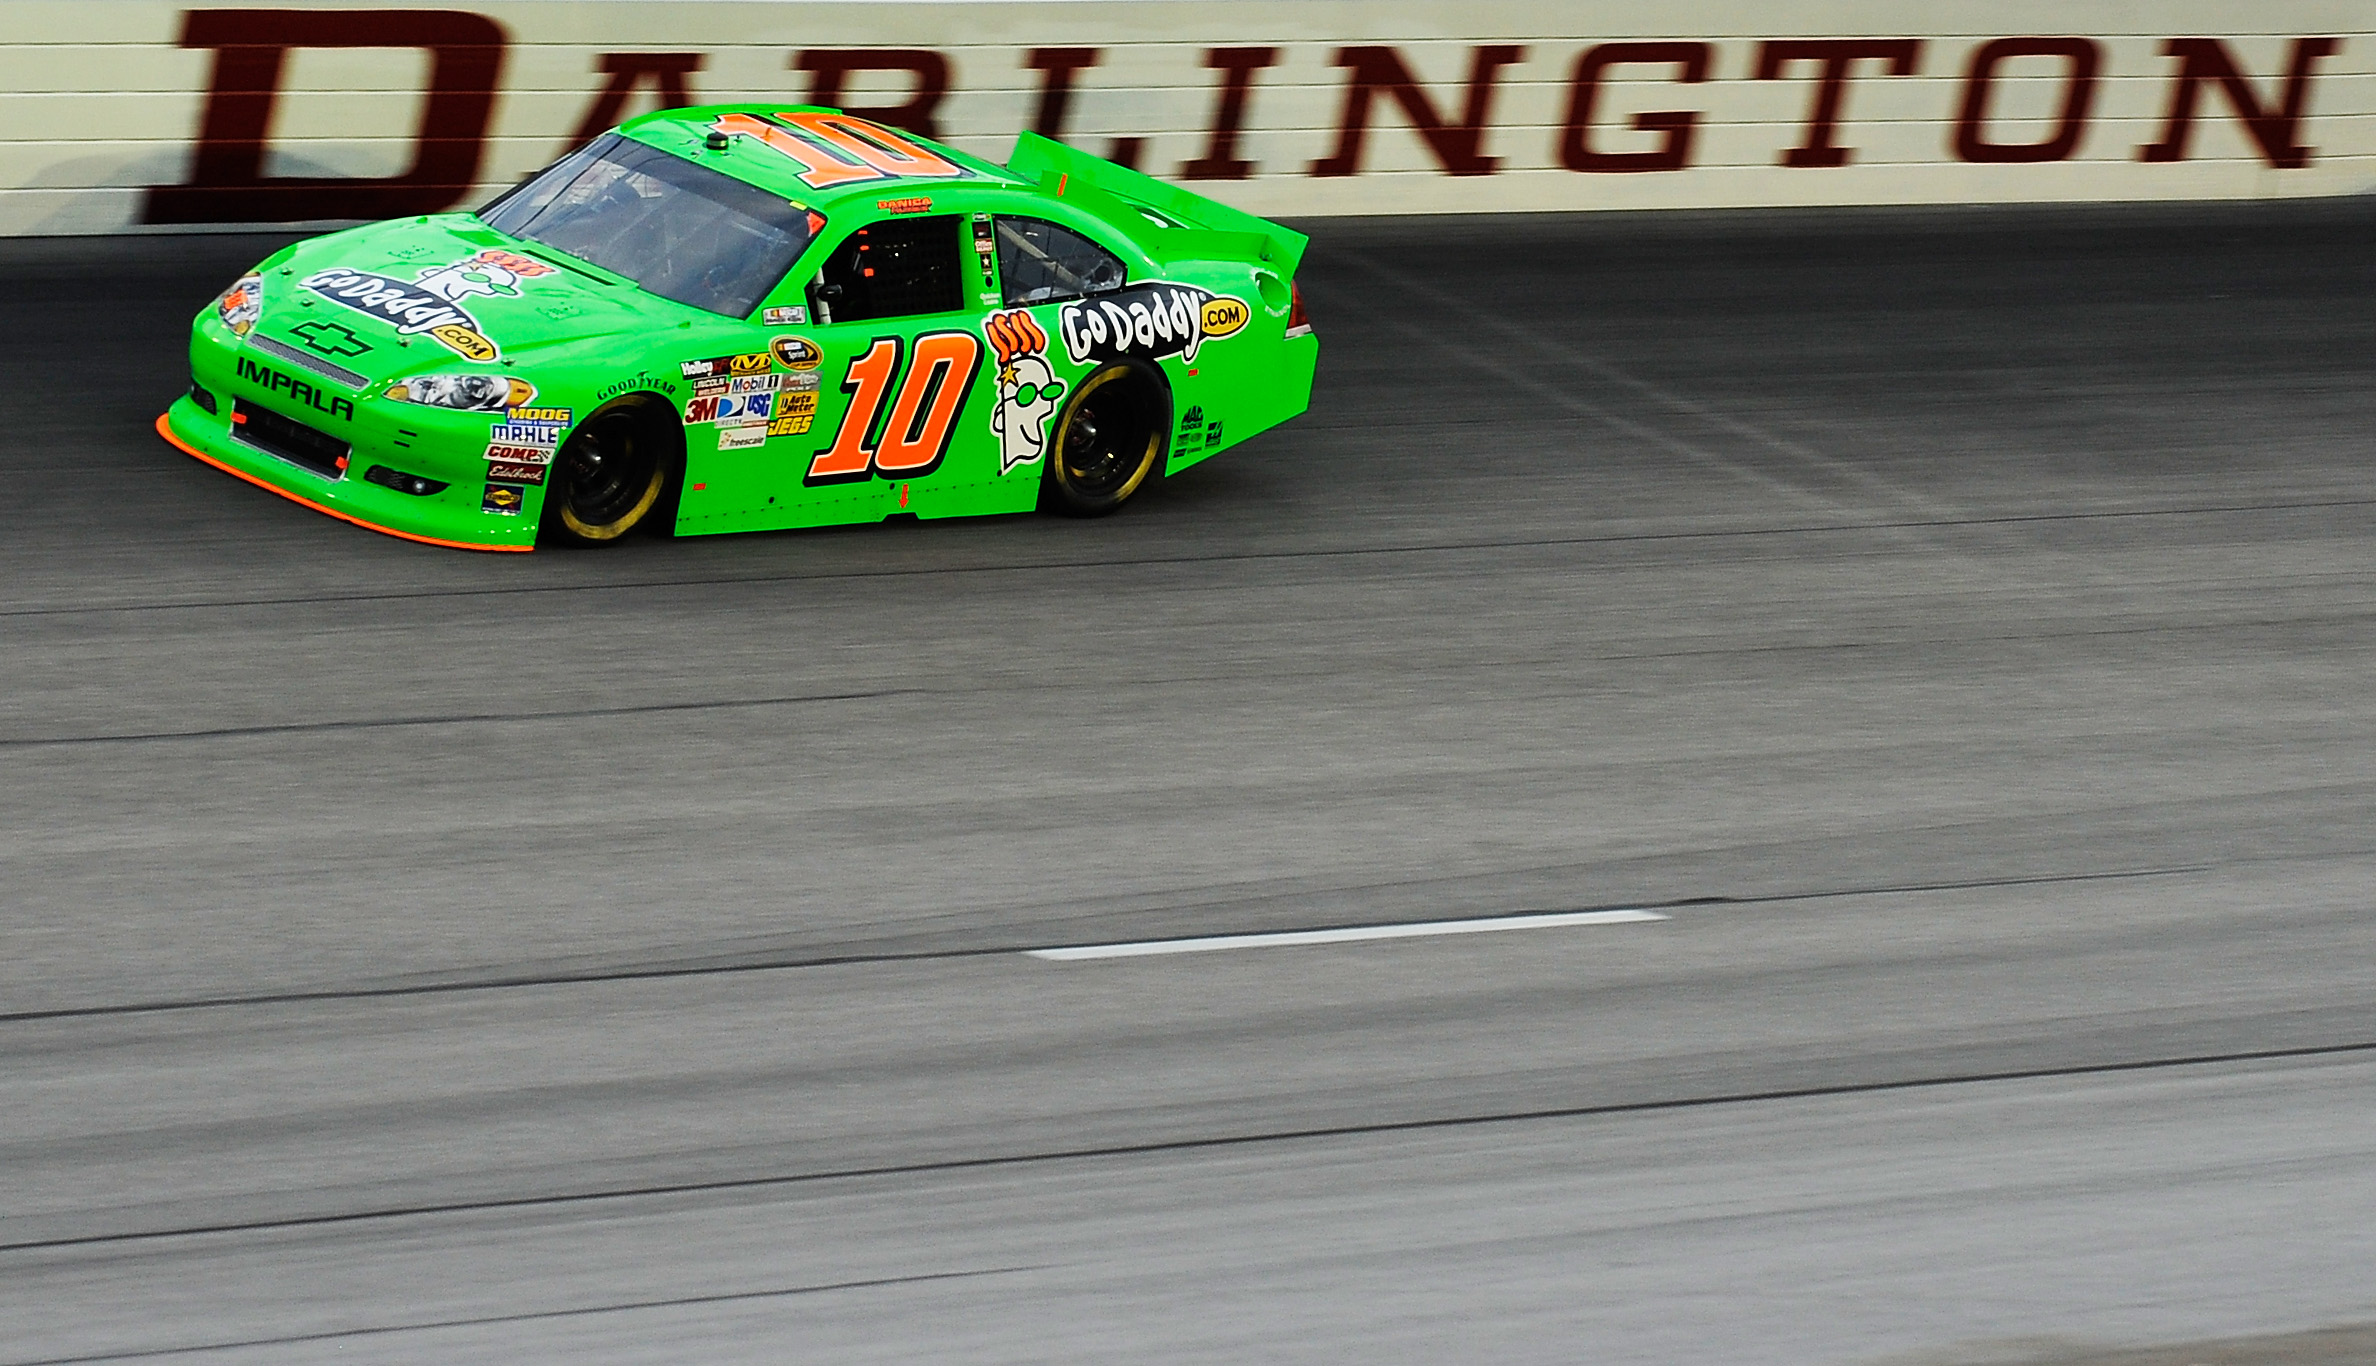 Danica Patrick finished 31st in her first Cup race at Darlington Spedway. (Getty Images)